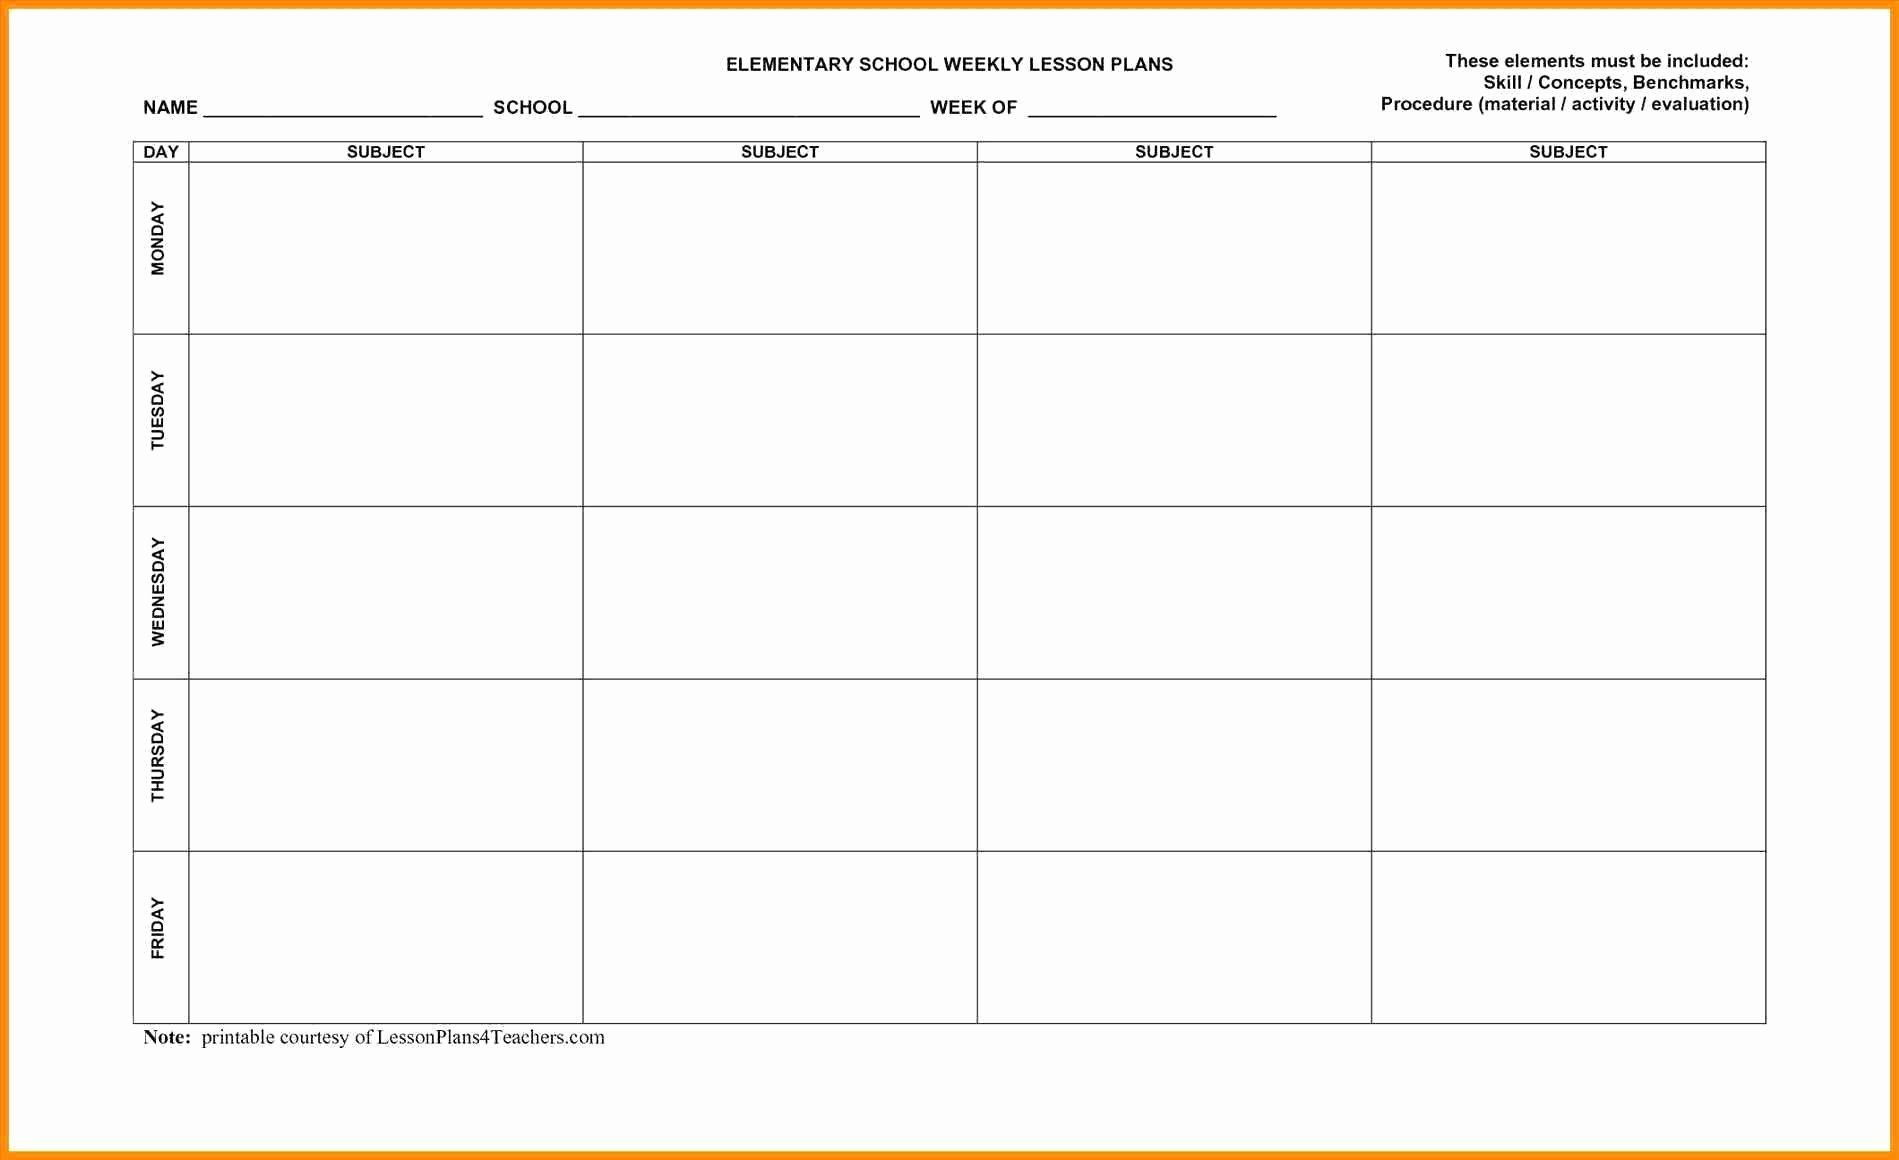 Free Weekly Lesson Plan Template Luxury Printable Weekly Lesson Plan Template Teacher Plan Book Template Weekly Lesson Plan Template Printable Lesson Plans Weekly lesson plan template elementary